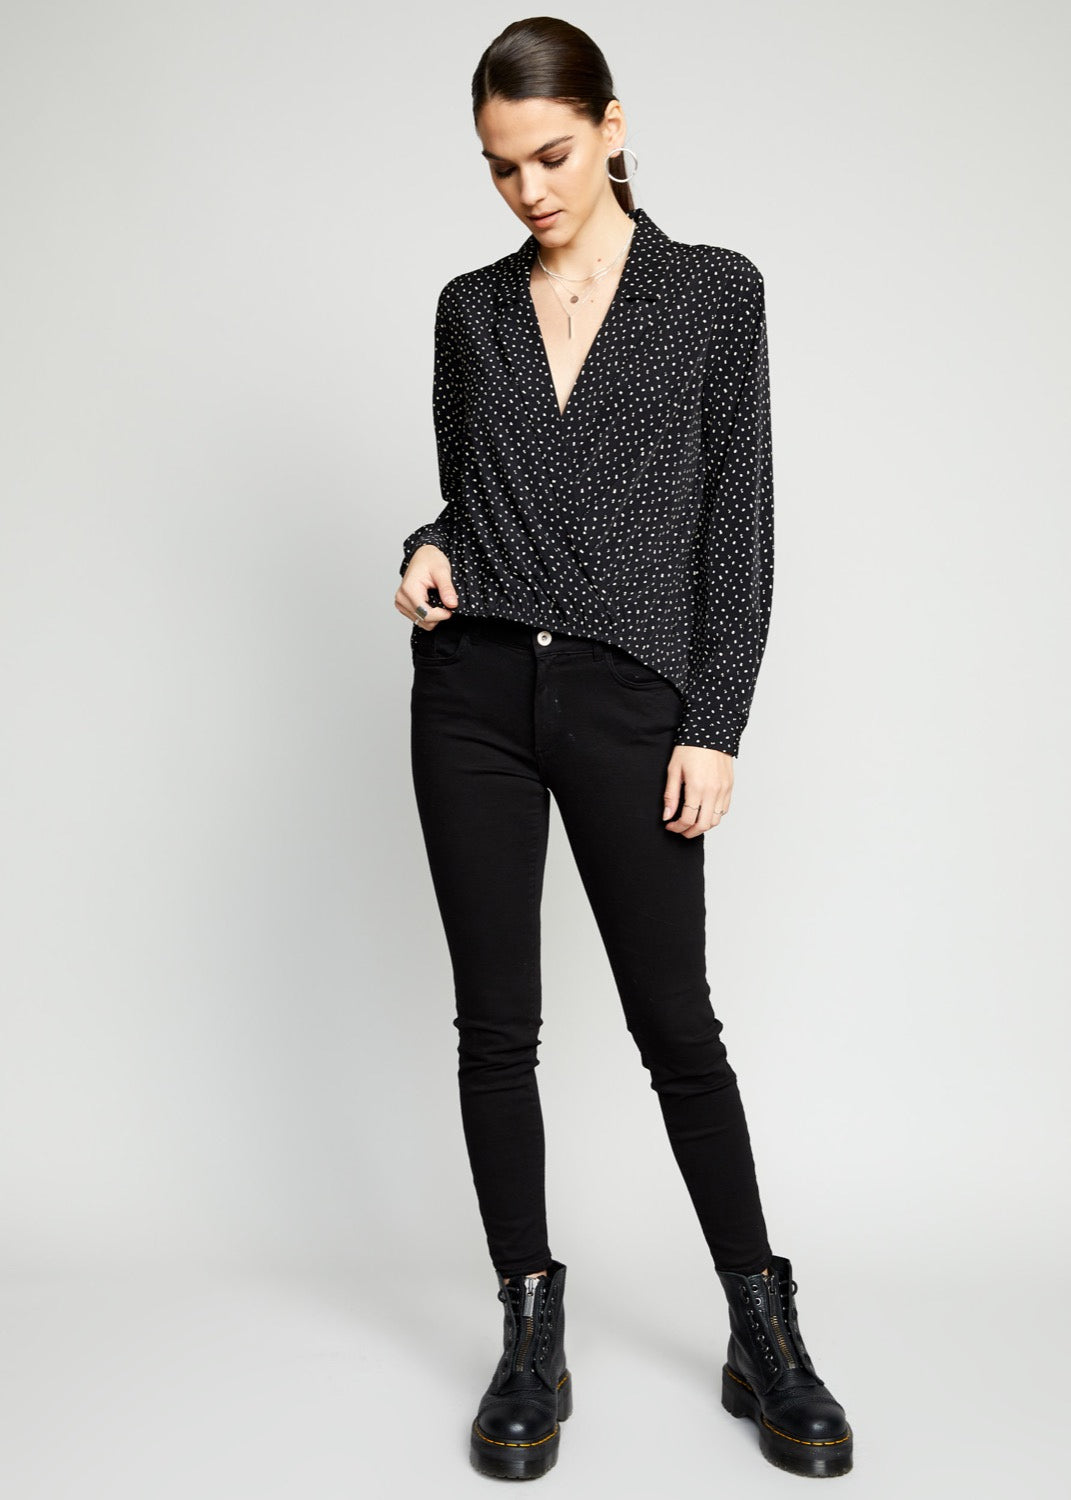 The Good Jane Domino Wrap Blouse